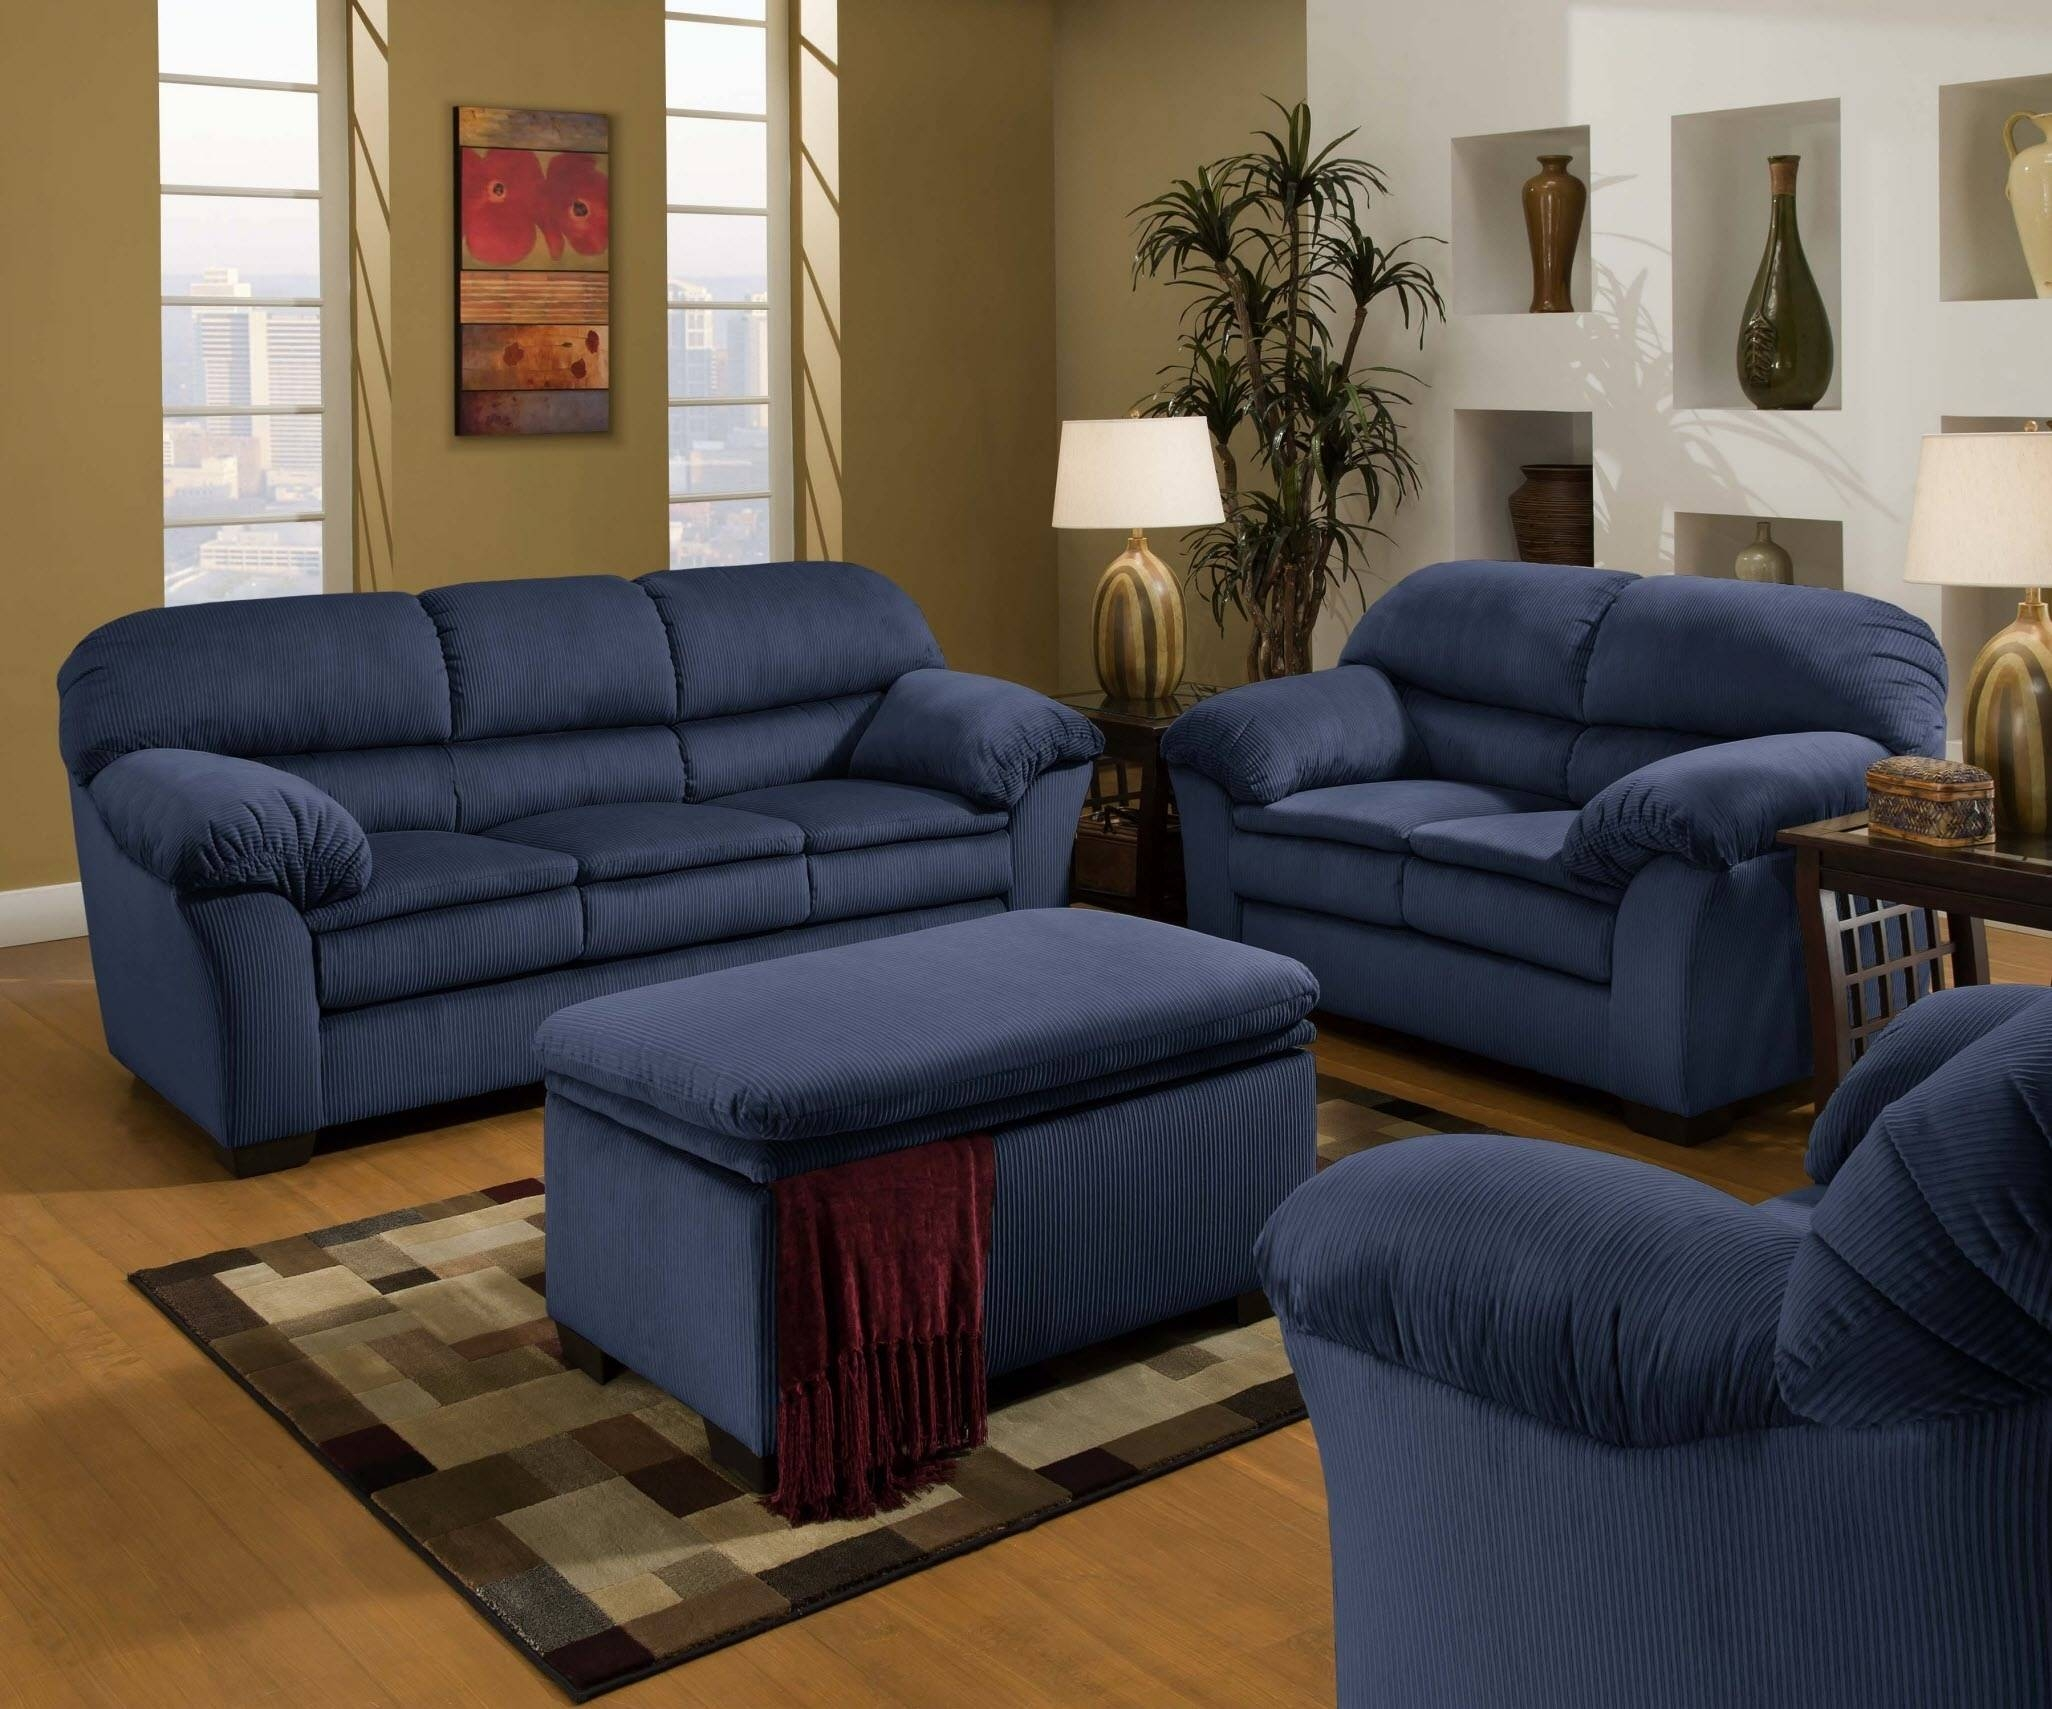 Sofas Center : Blue Sofas Sofa Impressive Dark Pictures Ideas Best within Dark Blue Sofas (Image 20 of 30)